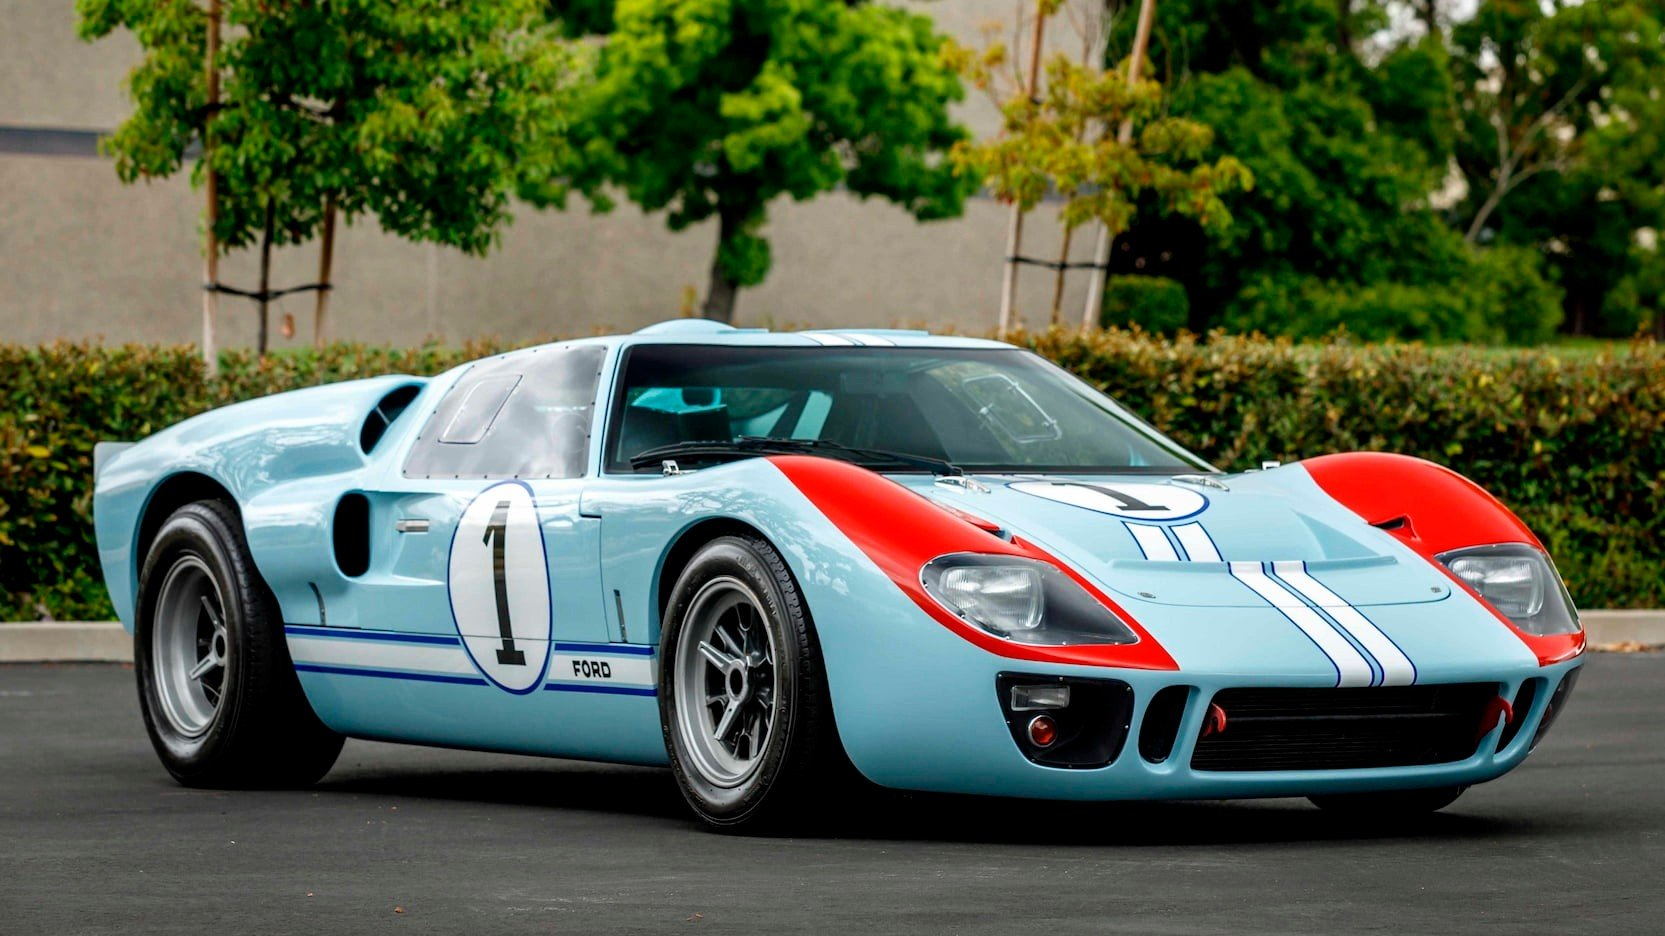 SUPERFORMANCE-GT40-MKII-1